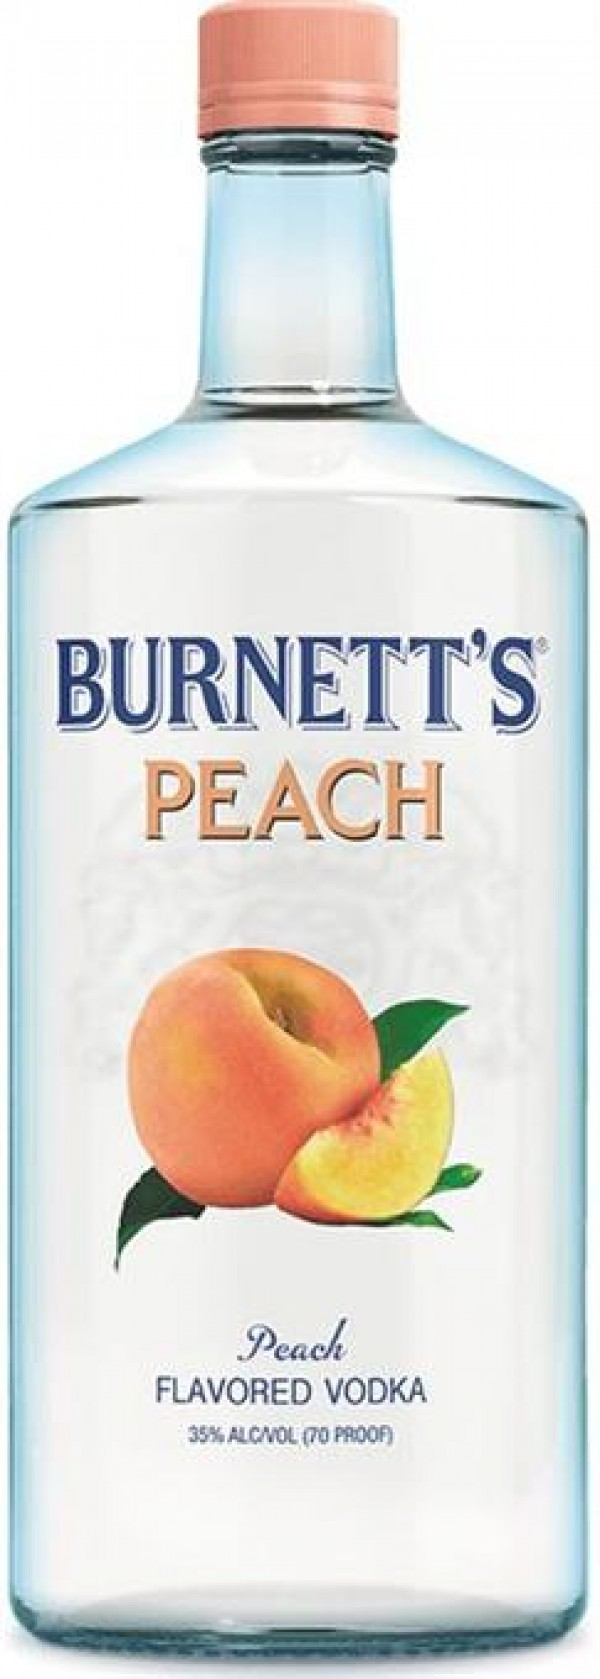 Burnett's Vodka Peach